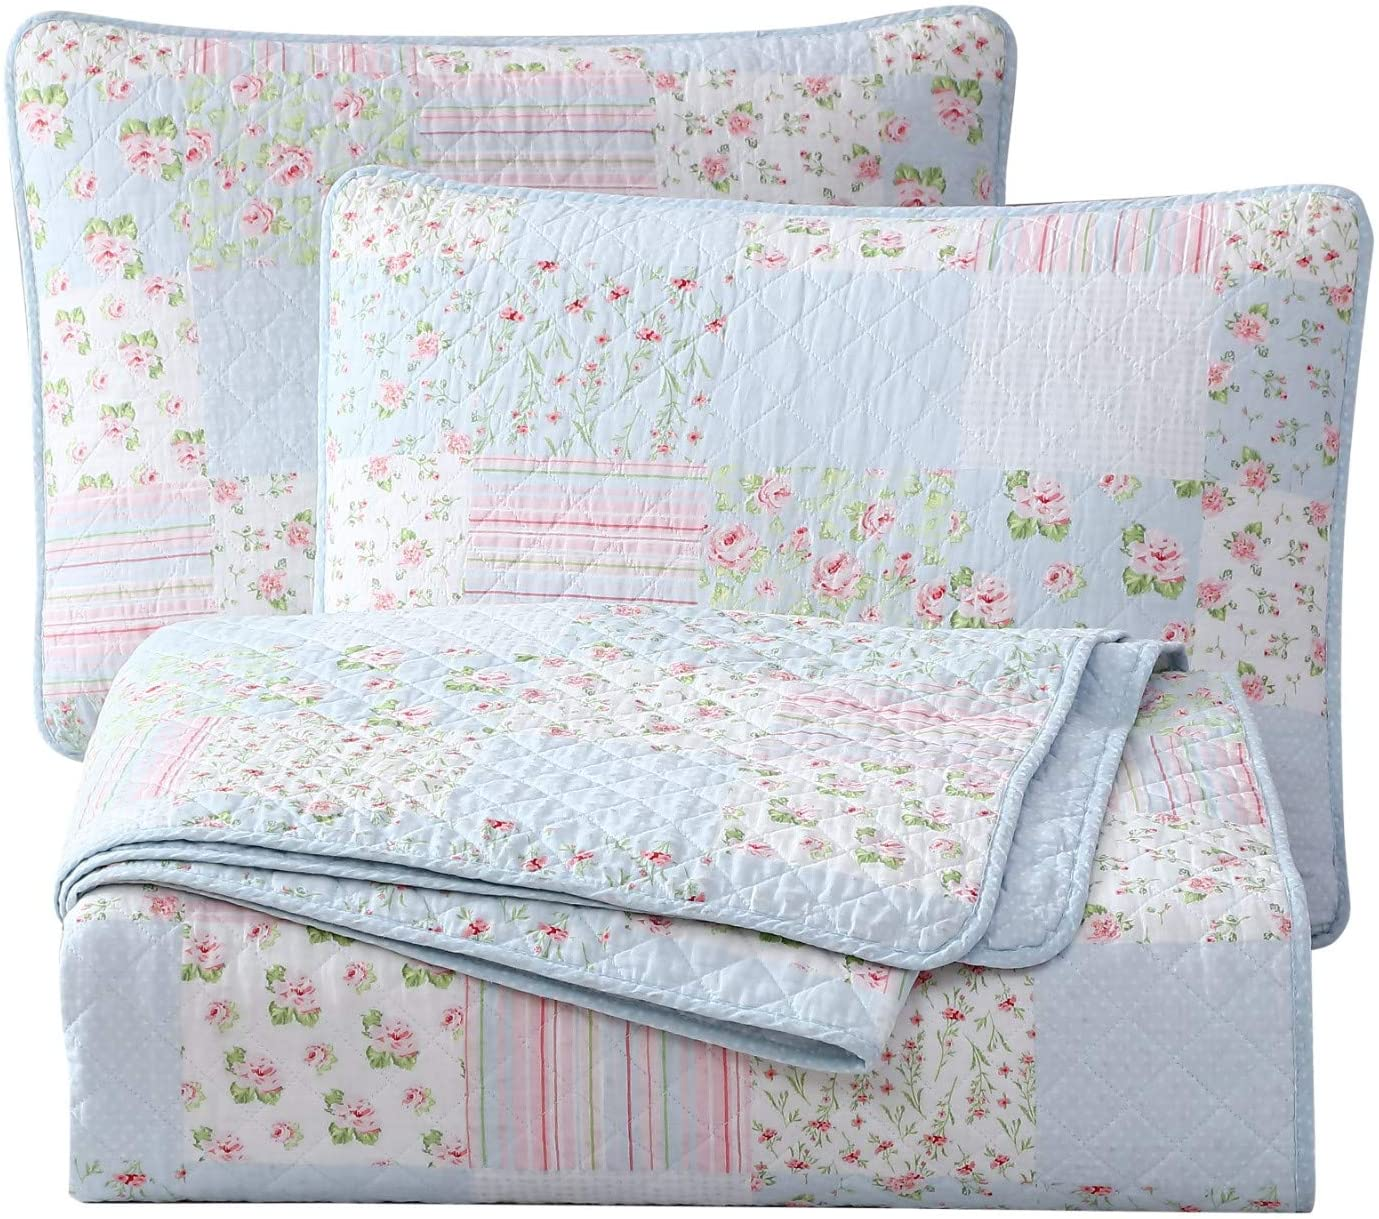 Chezmoi Collection Holly 3-Piece Printed Patchwork Cotton Quilt Set - Flower Floral Candy Stripe Polka Dots - Stone Washed Lightweight Bedspread, Queen Size